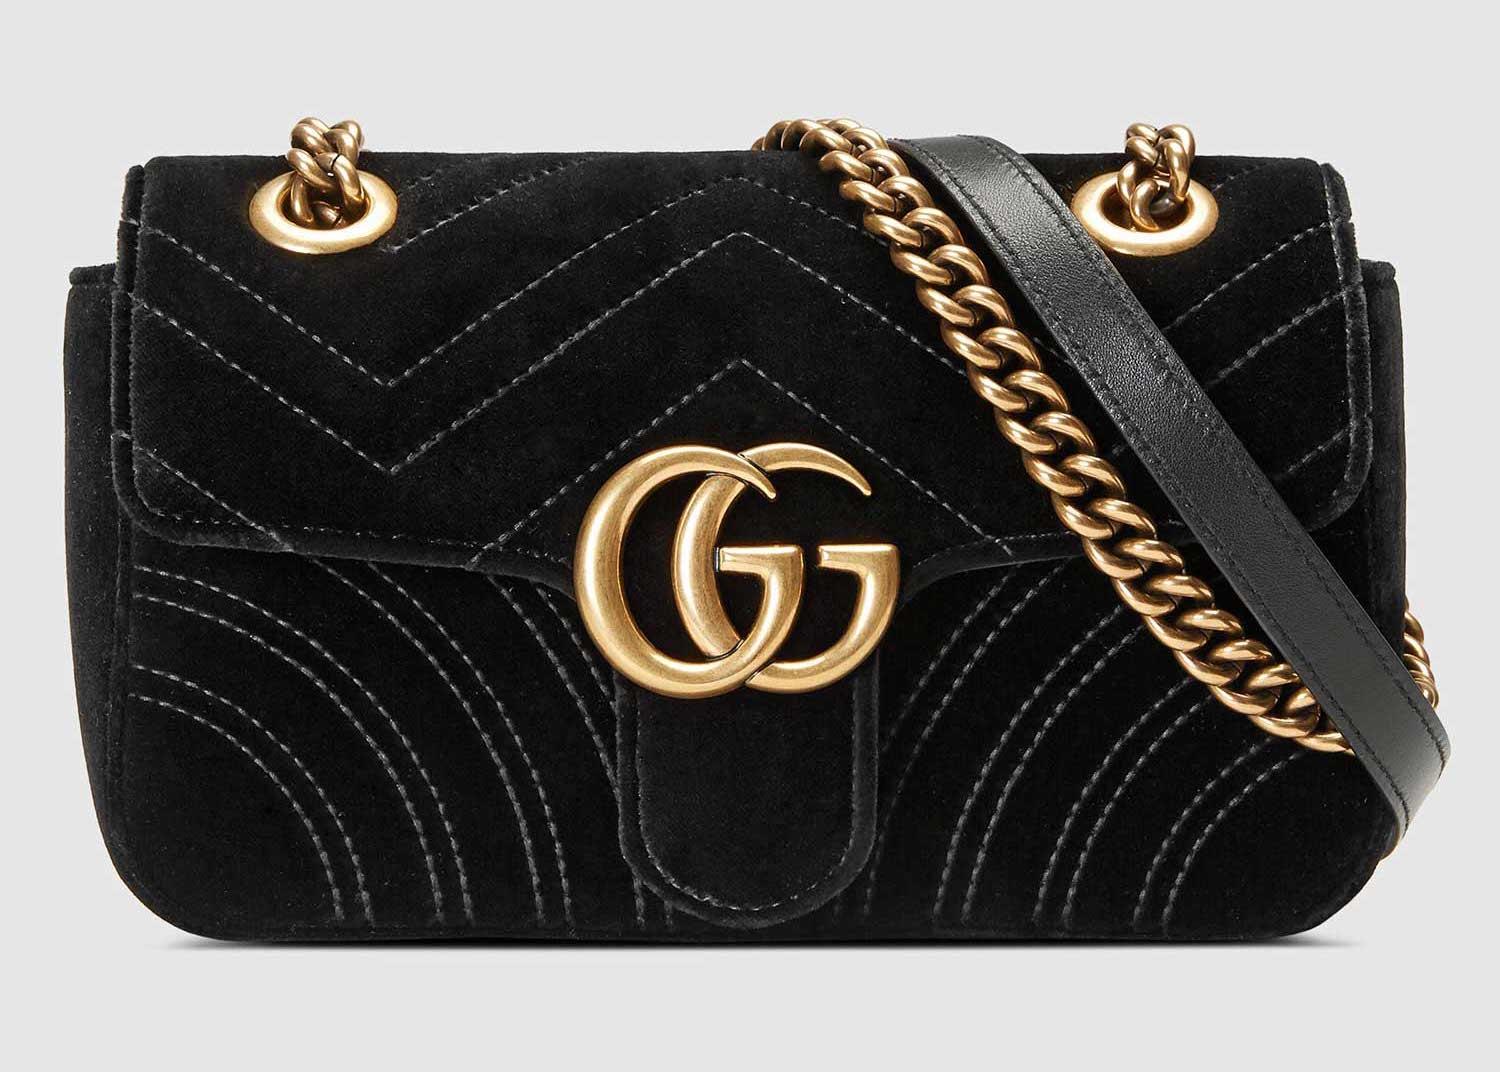 624b4e2a8393e 12 Must Have Gucci Bags For 2019